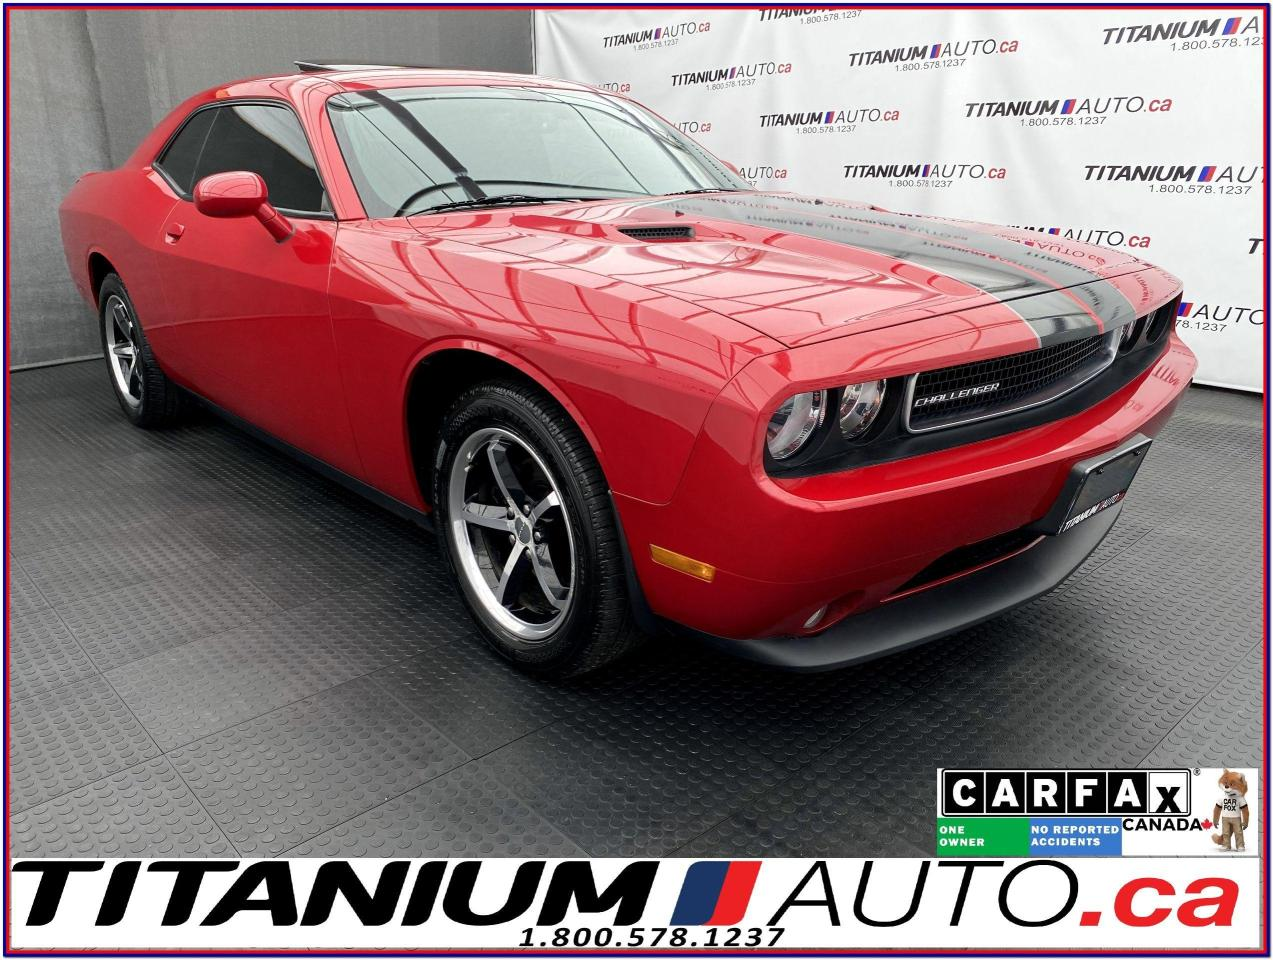 used 2011 dodge challenger sxt plus gps heated leather sunroof push button xm for sale in london, ontario carpages.ca